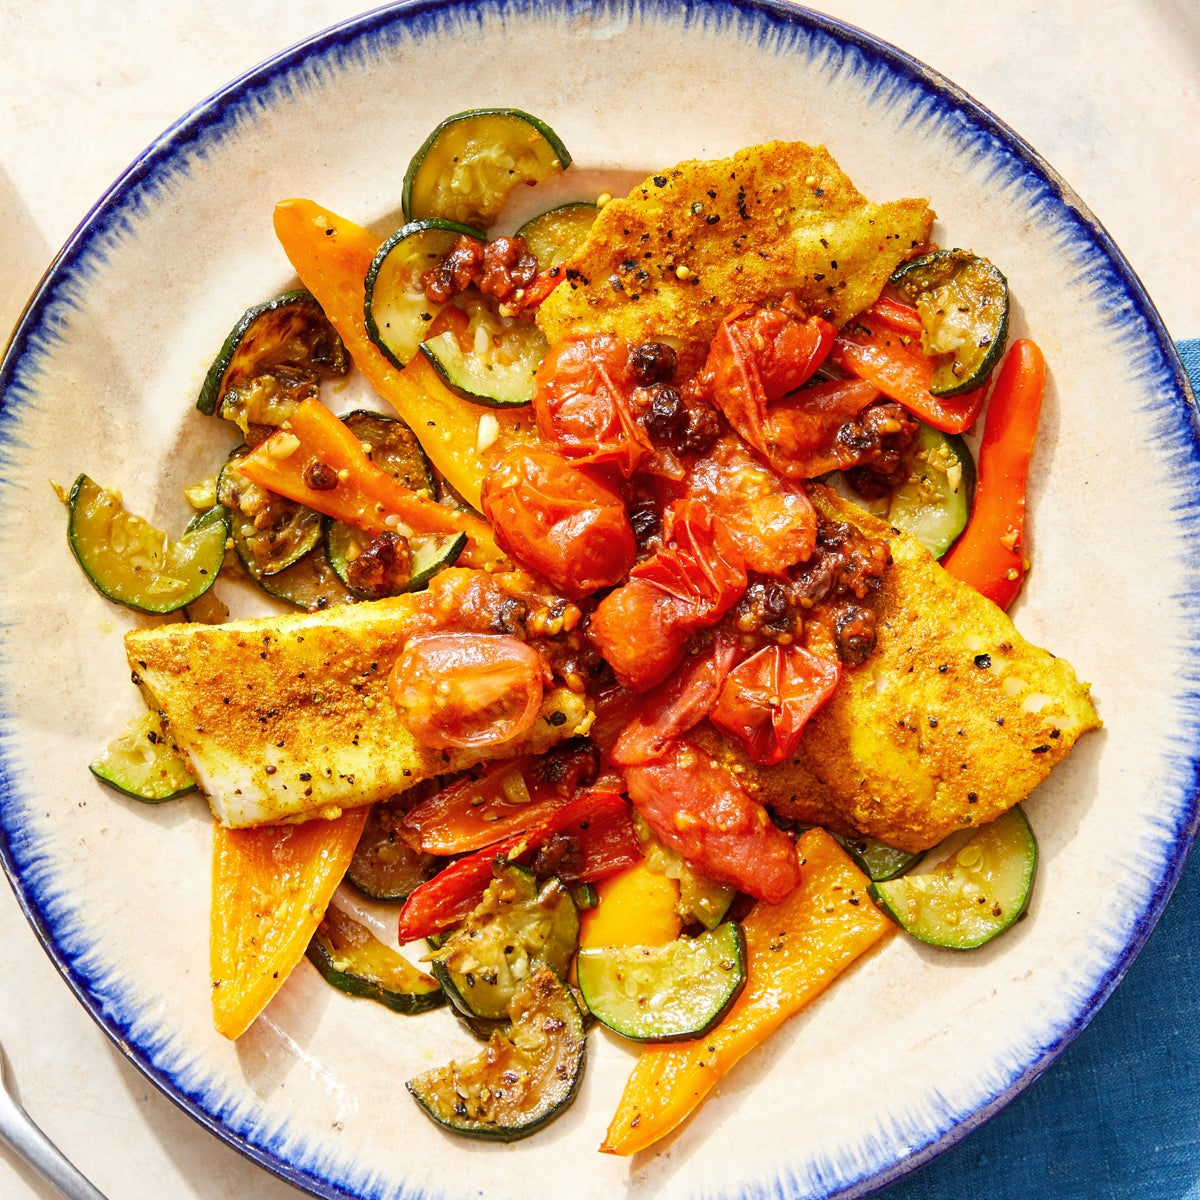 Indian-Style Baked Fish with Zucchini, Peppers & Tomato-Currant Chutney